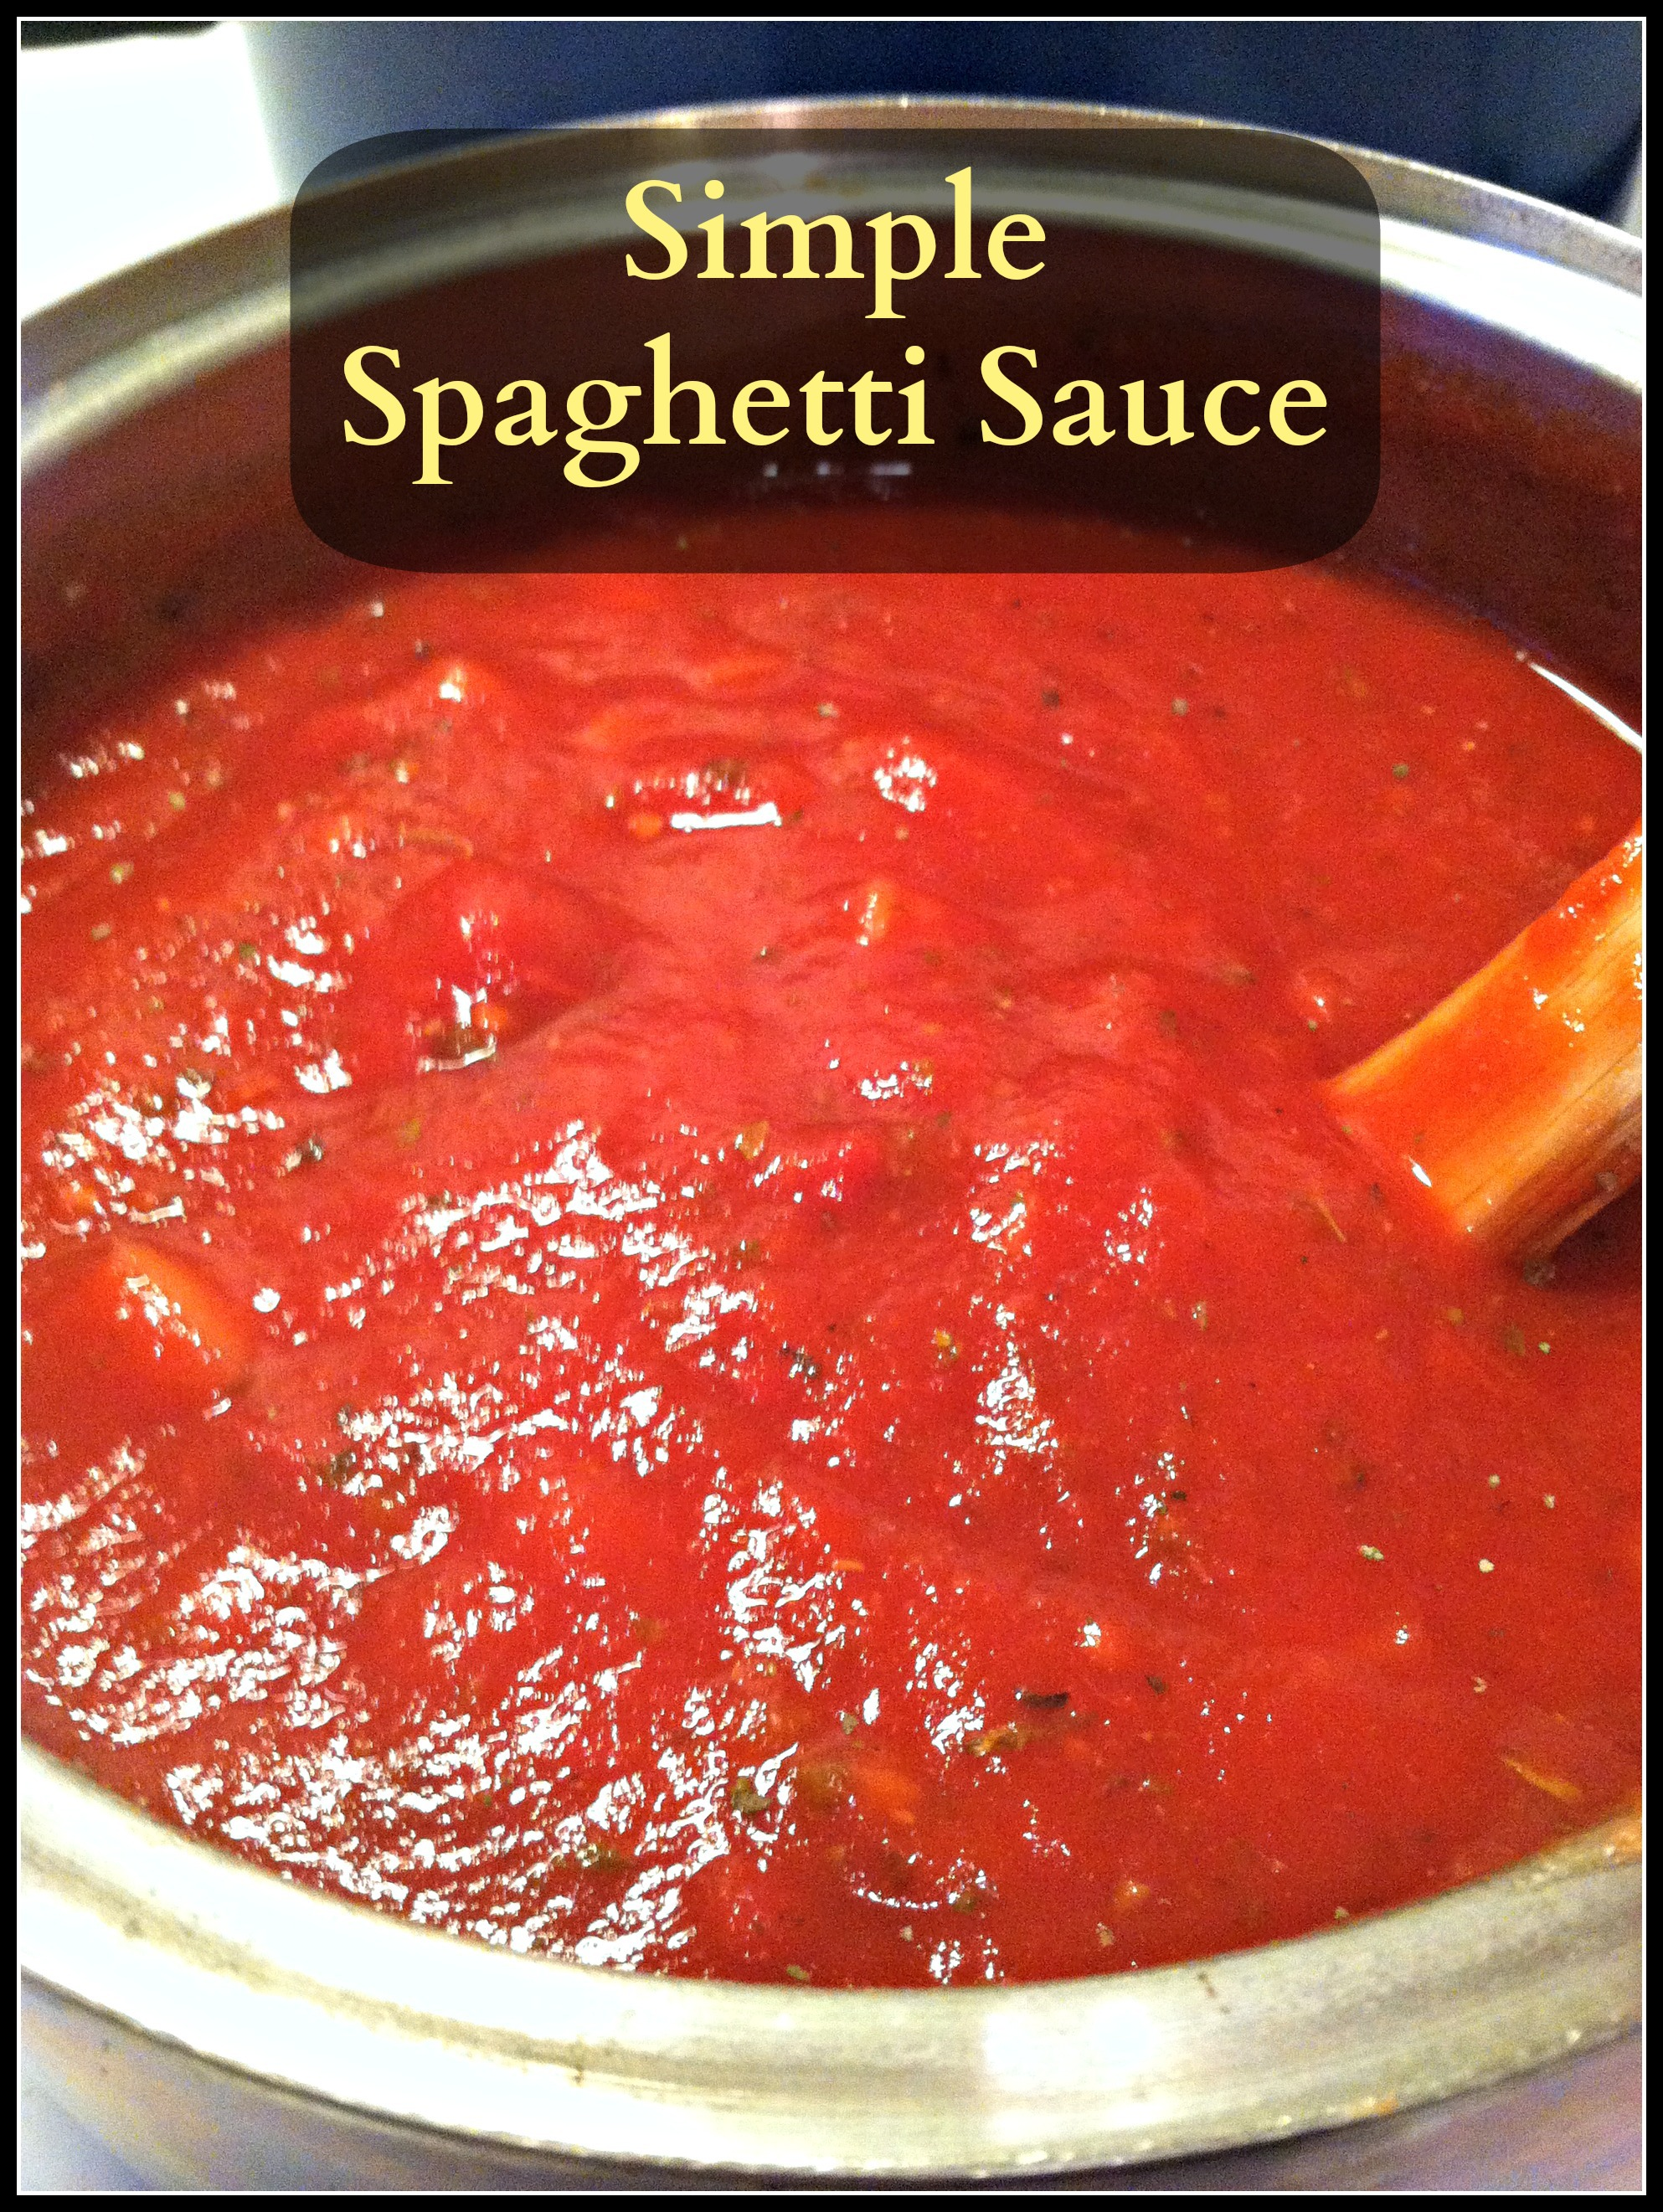 ... spaghetti sauce recipe i make when i m looking for something quick and